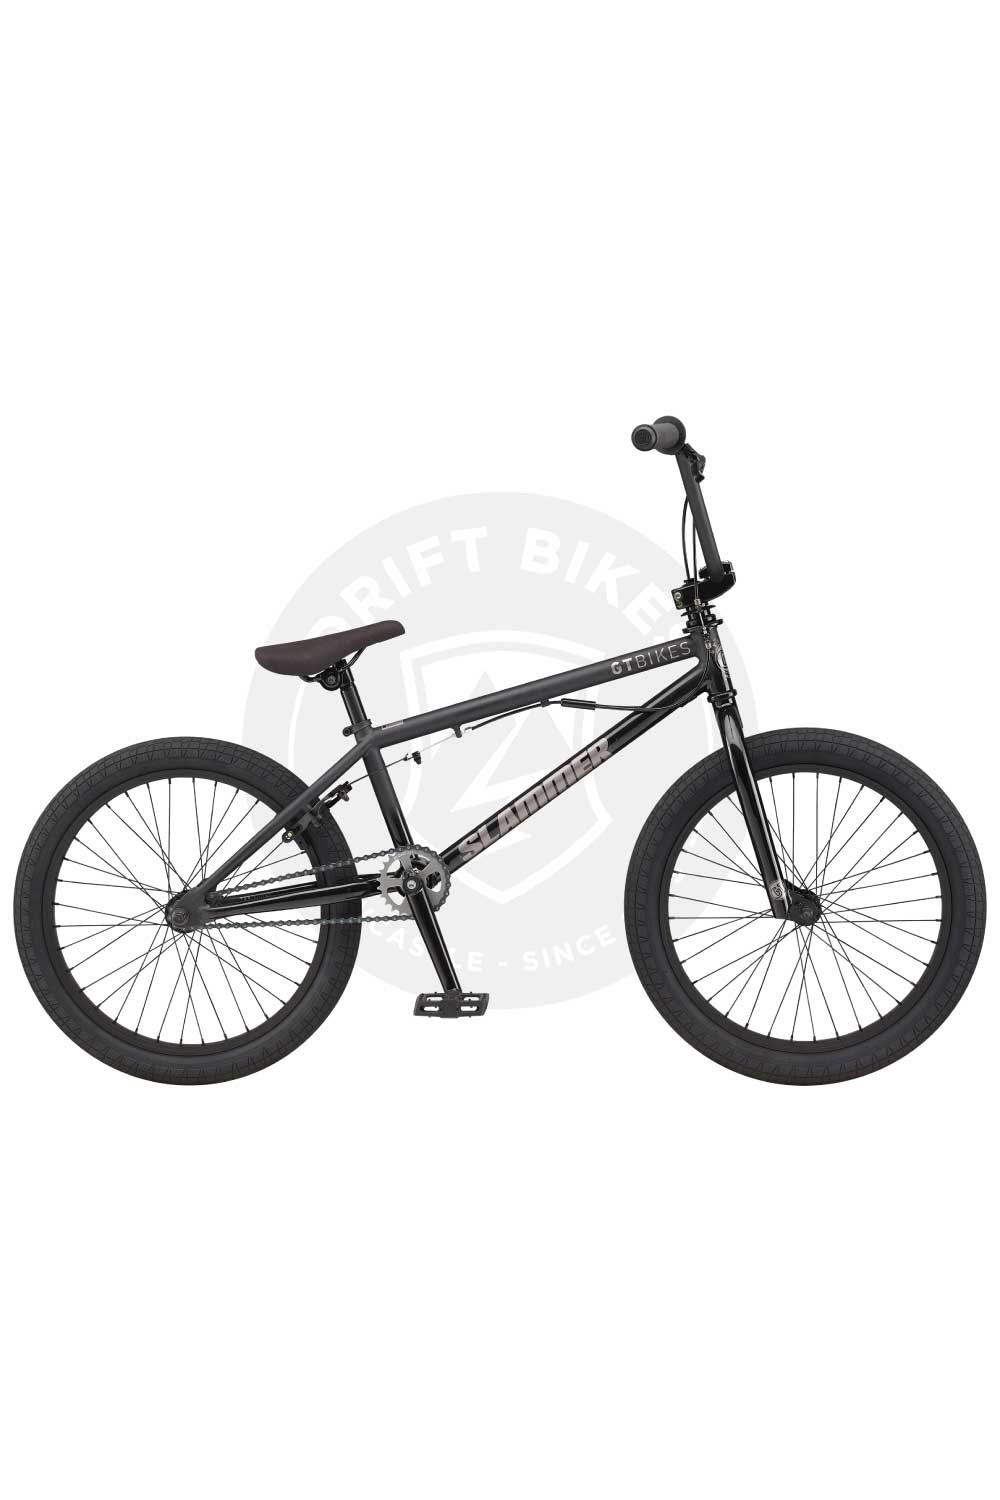 "GT Bicycles 2021 Slammer 20"" BMX TT Matte Washed Black"